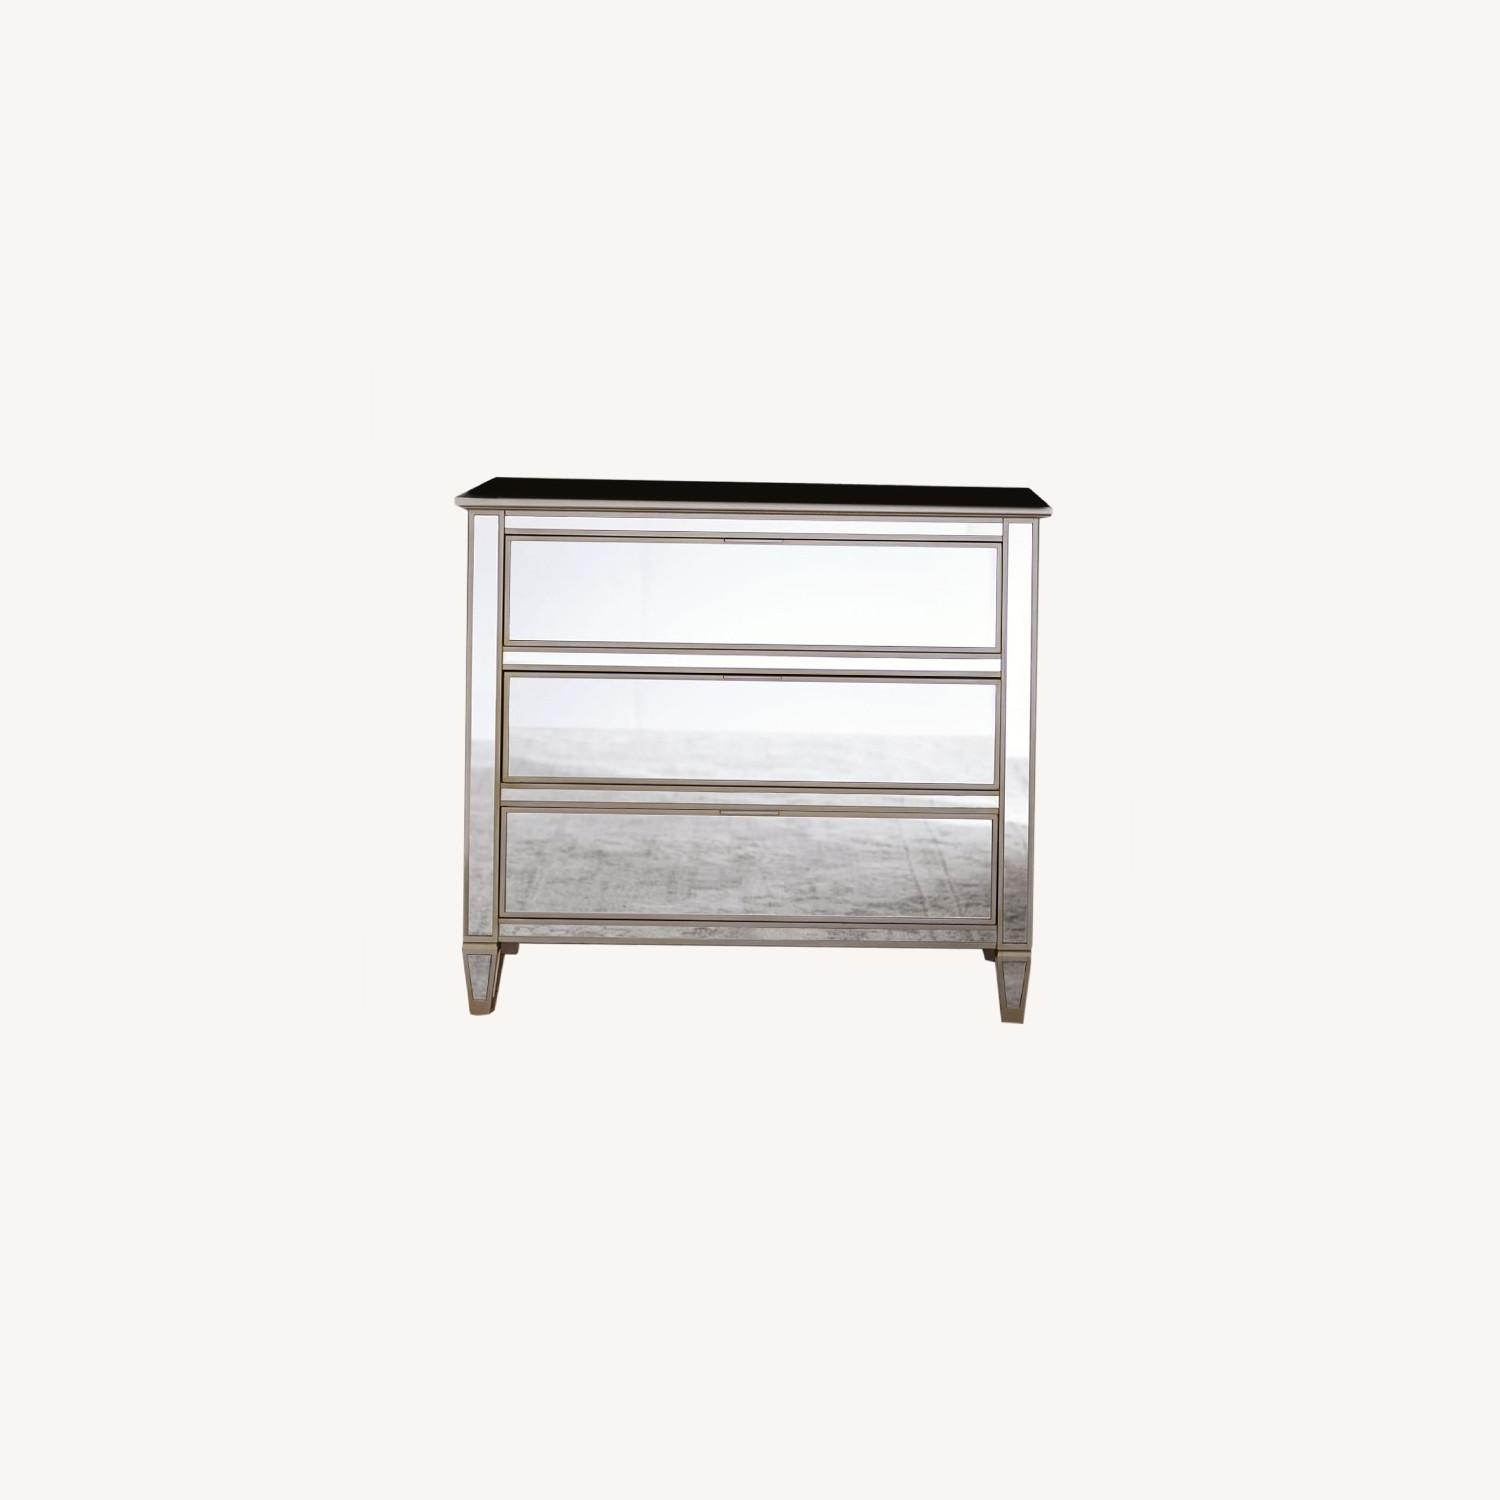 Pottery Barn Parker Mirrored Dressers - image-0